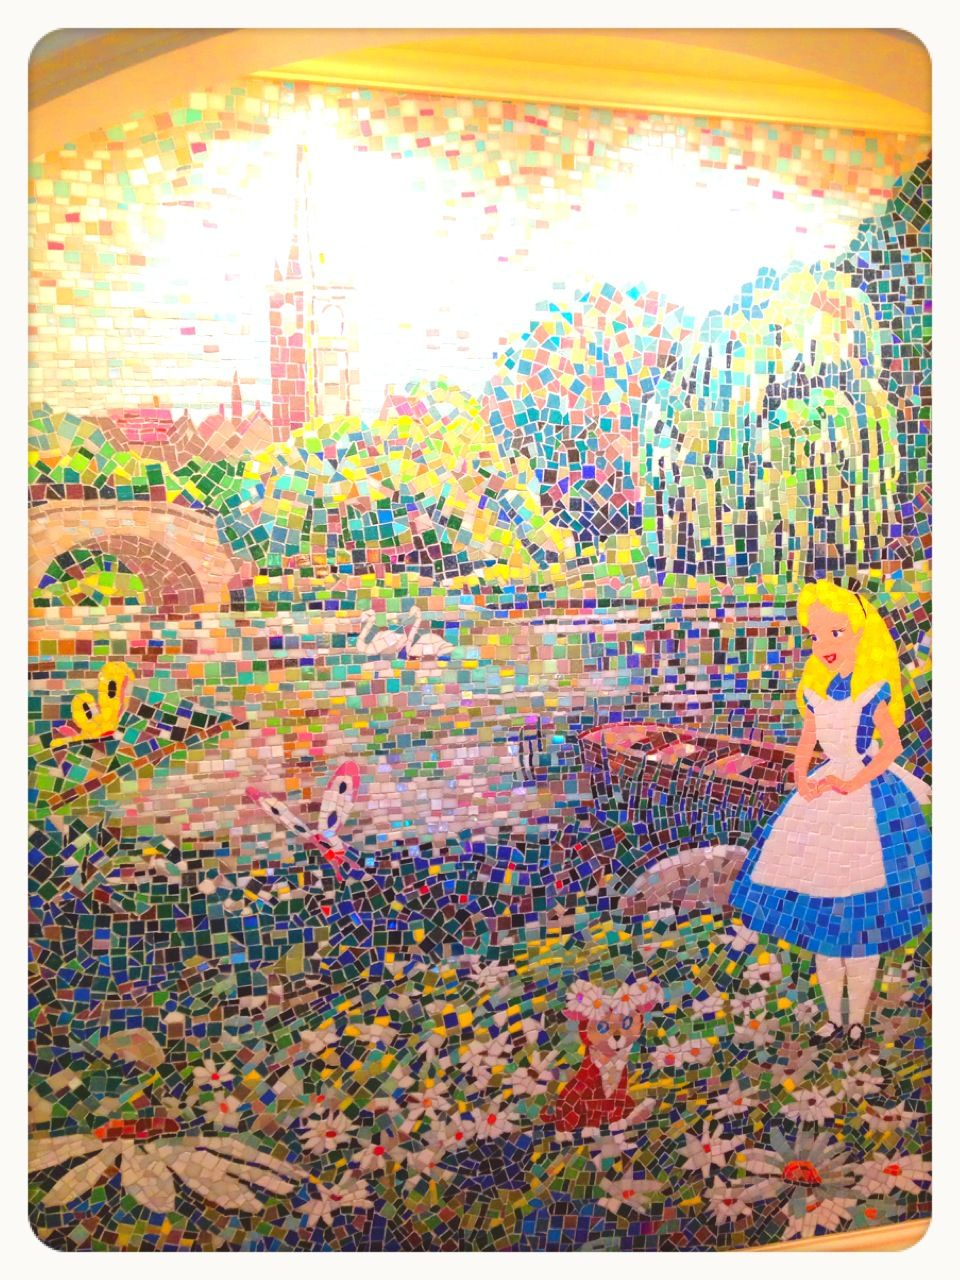 Alice mosaic at Tokyodisneyland Hotel